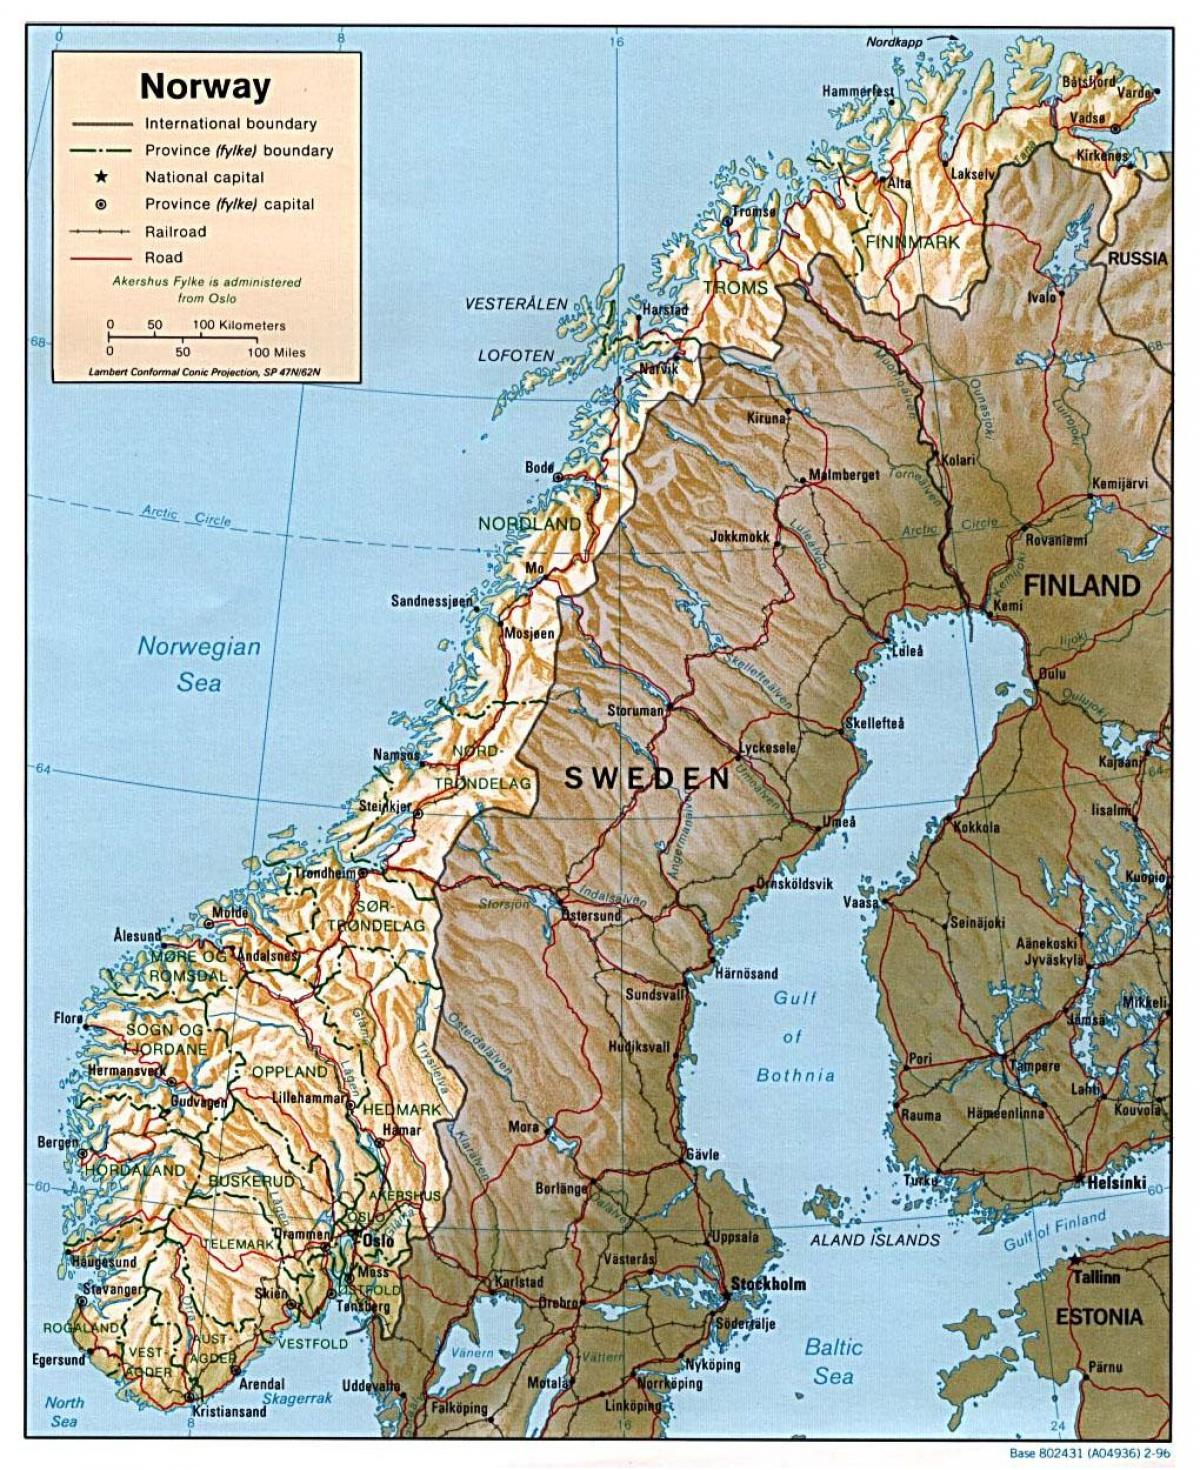 detailed map of Norway with cities